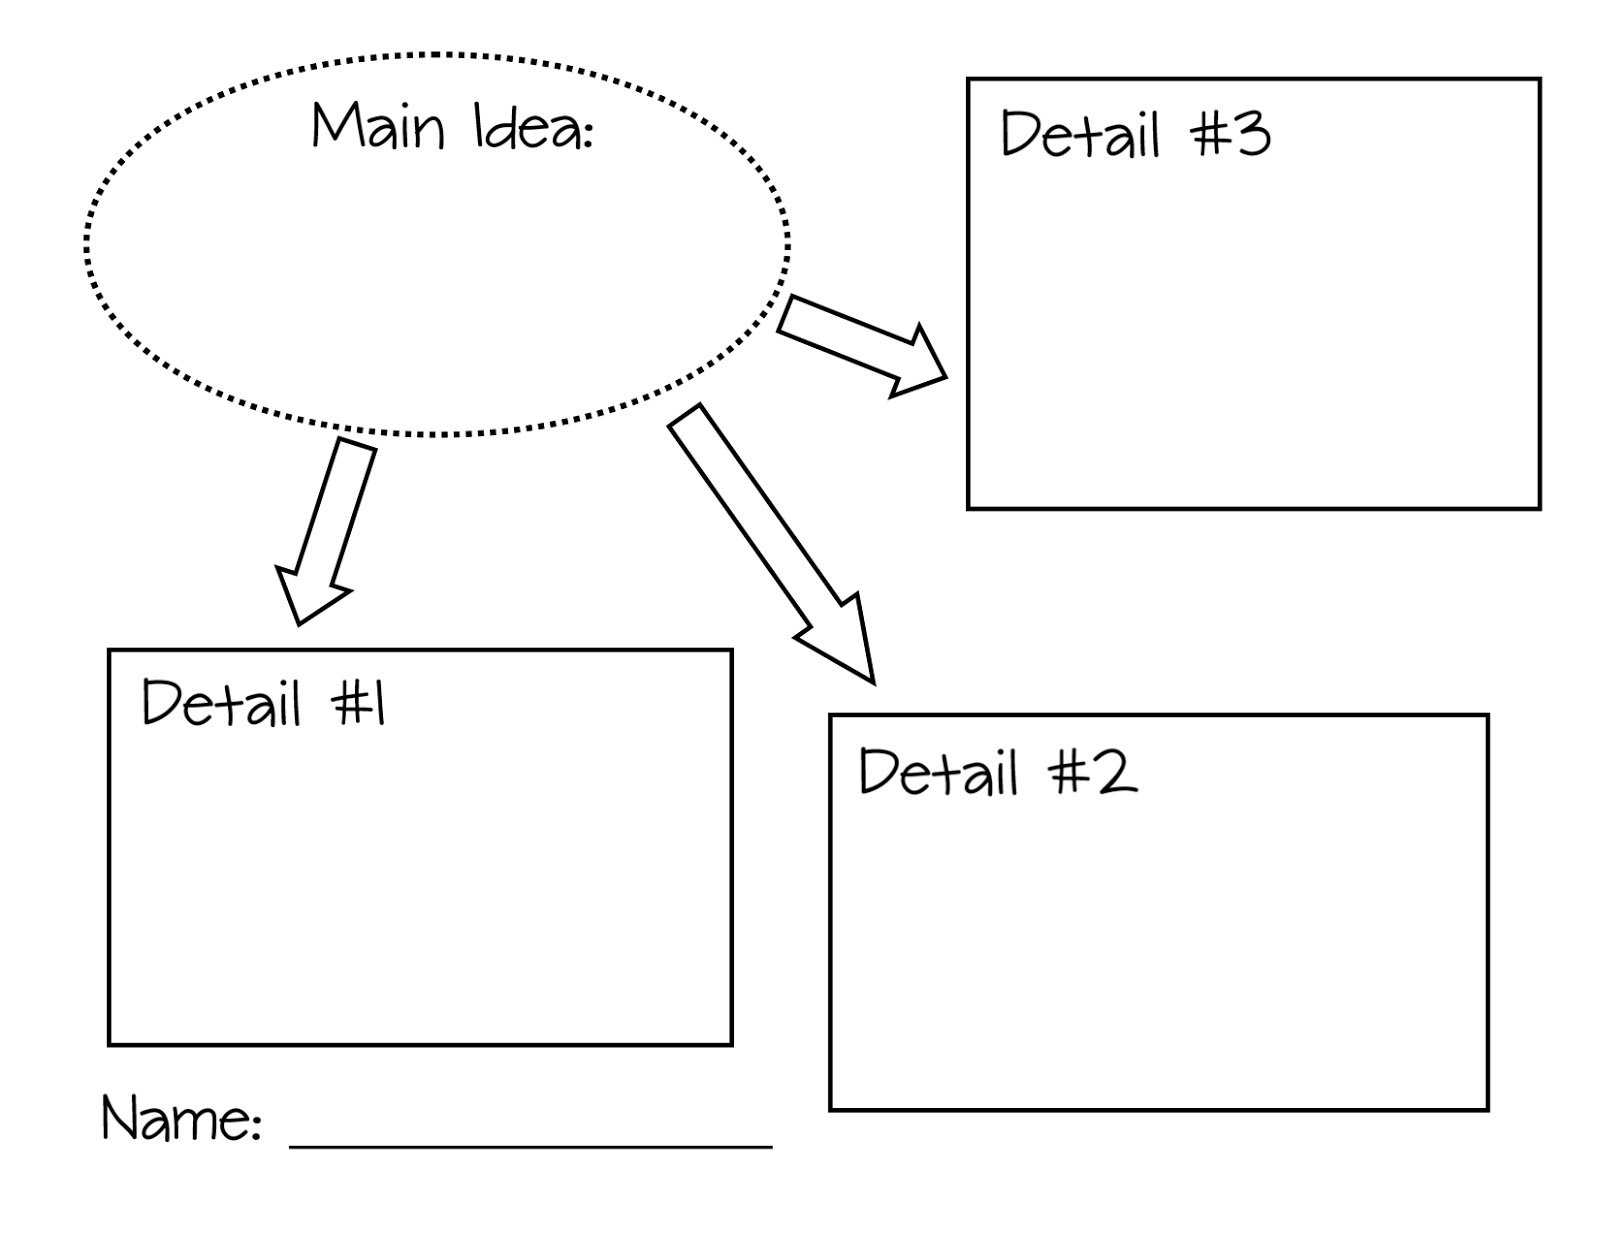 10 Stylish Graphic Organizers For Main Idea